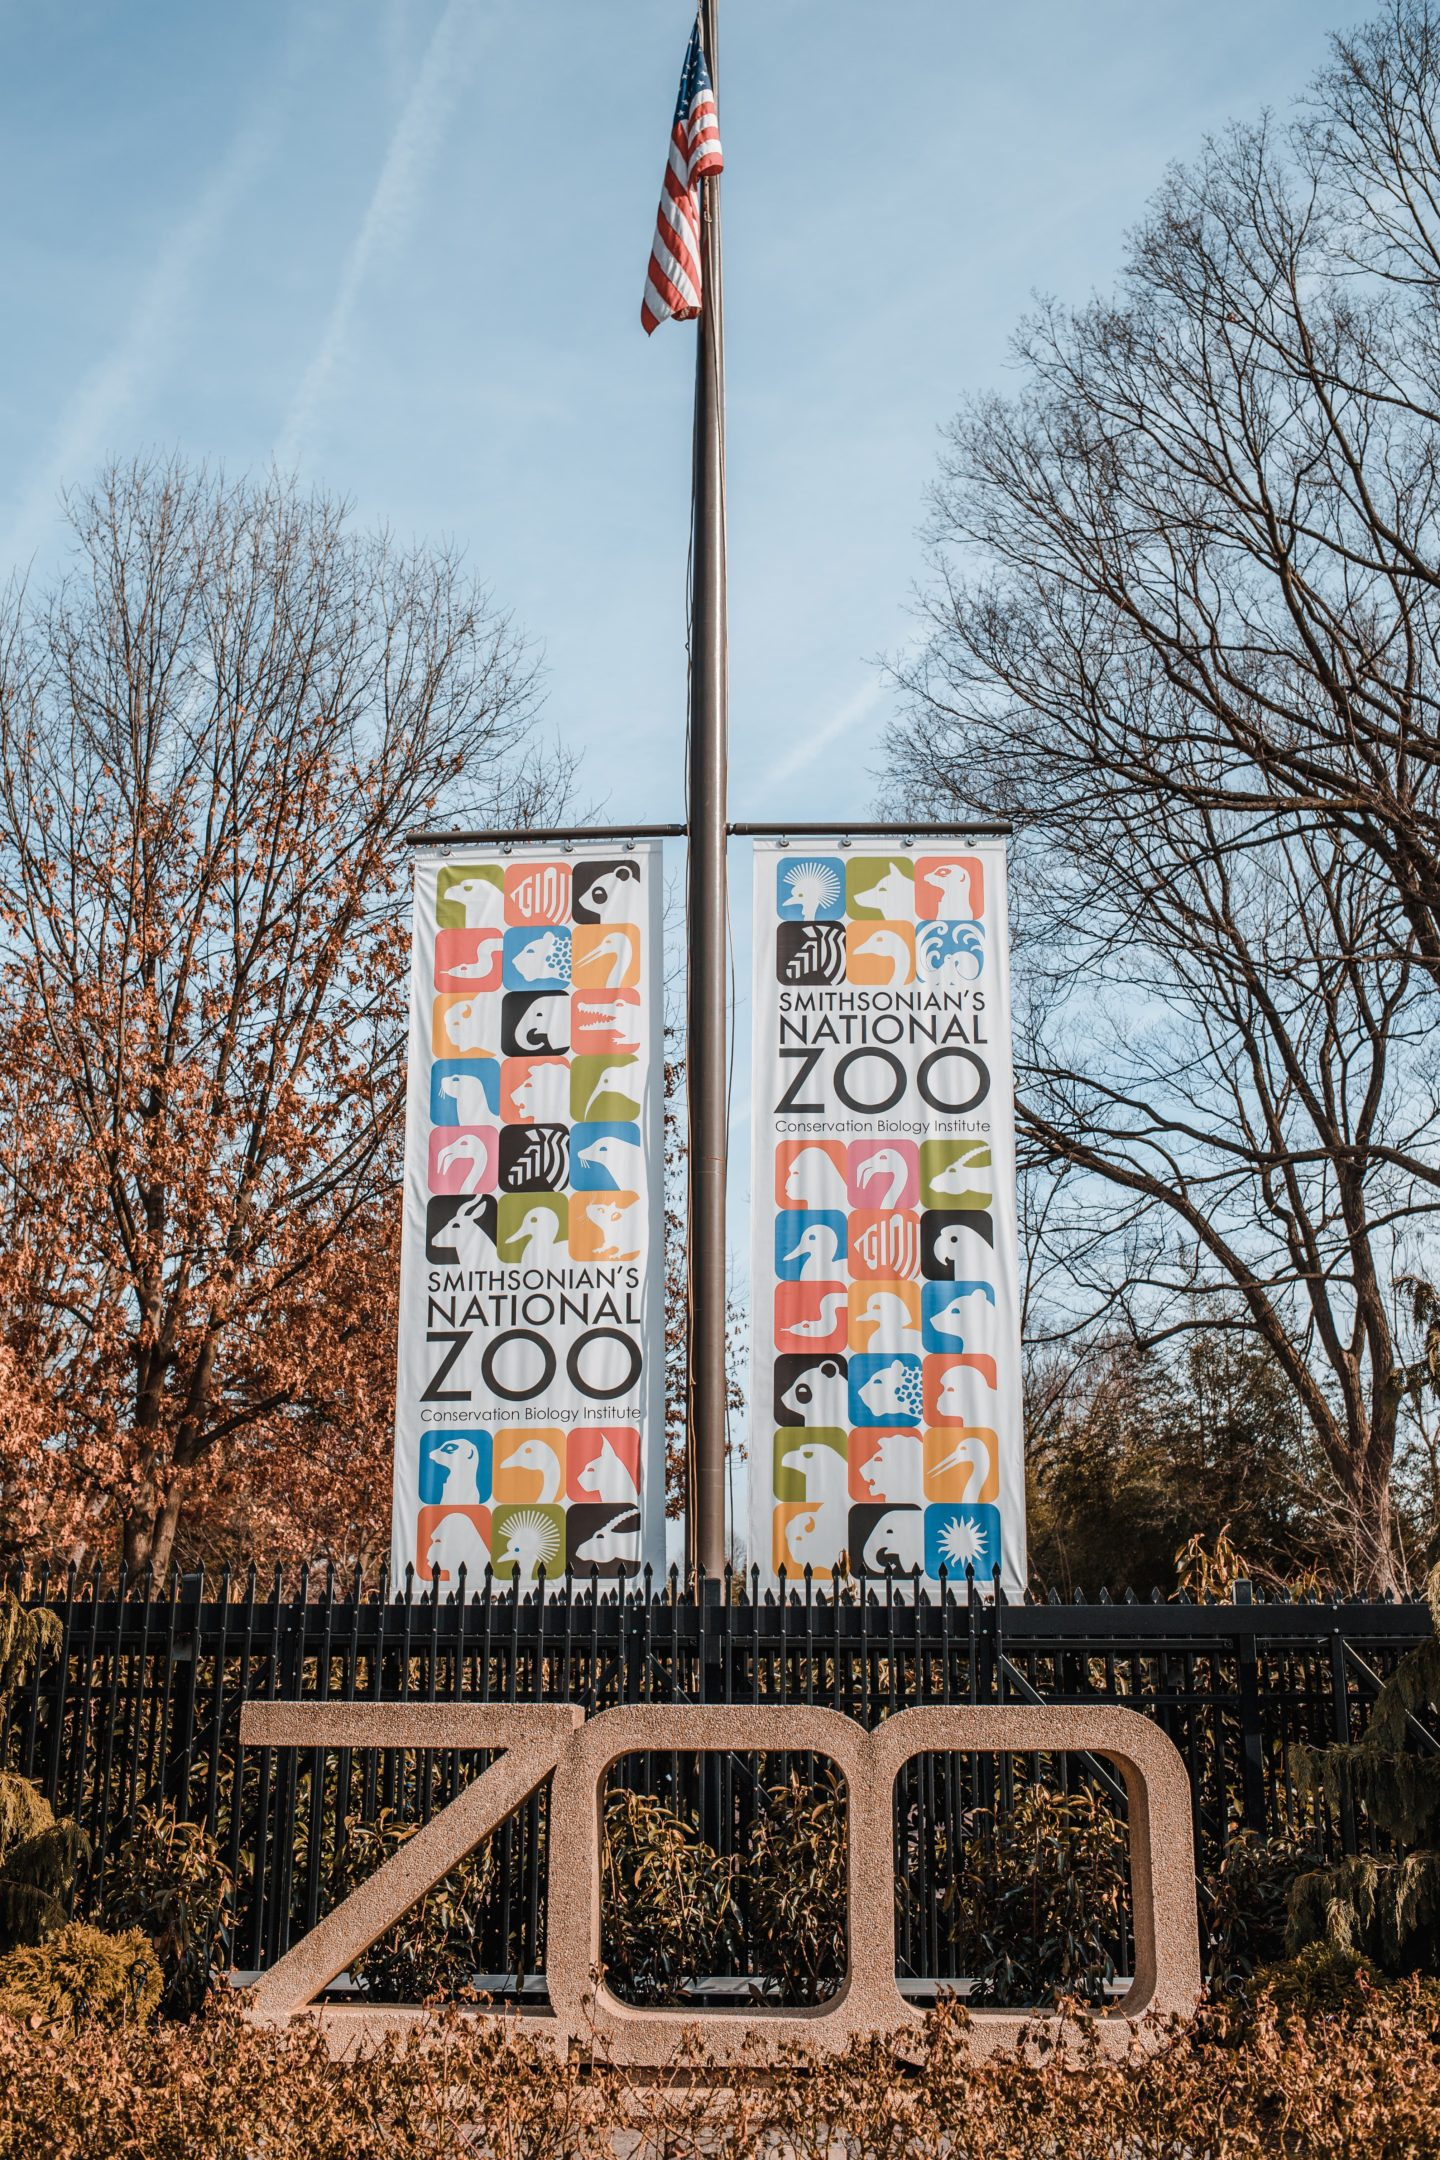 Smithsonian's National Zoo